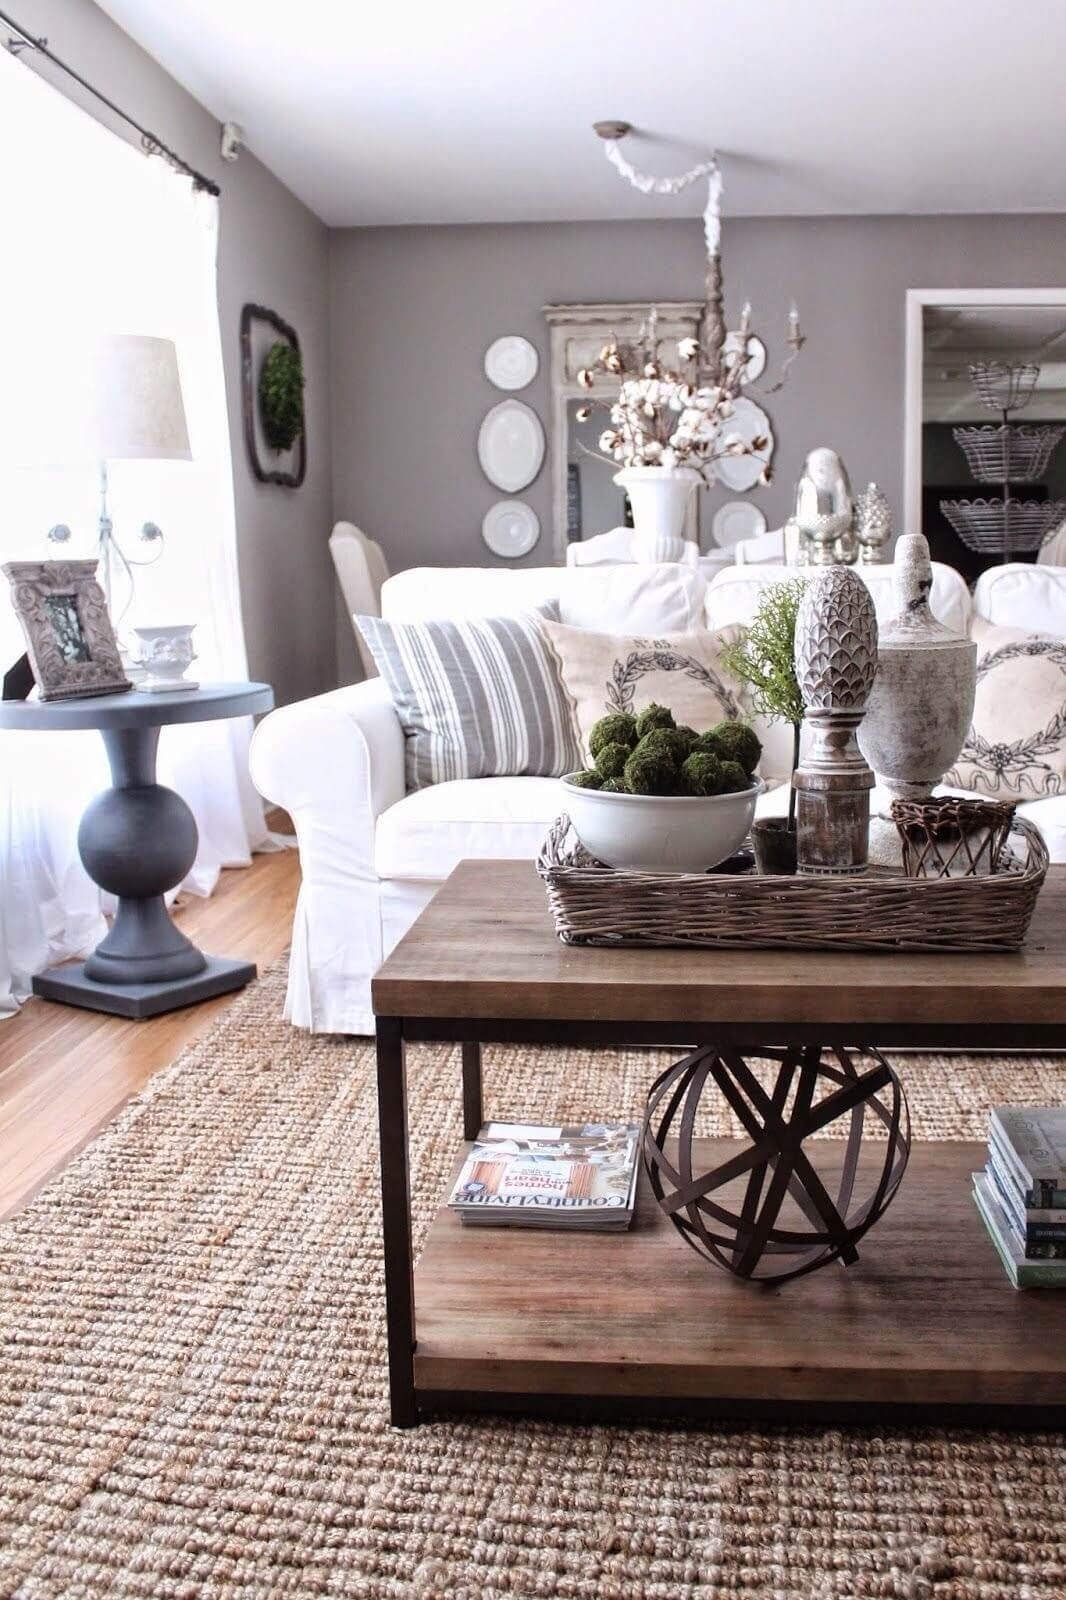 Living Room Coffee Table Decor Lovely 37 Best Coffee Table Decorating Ideas and Designs for 2019